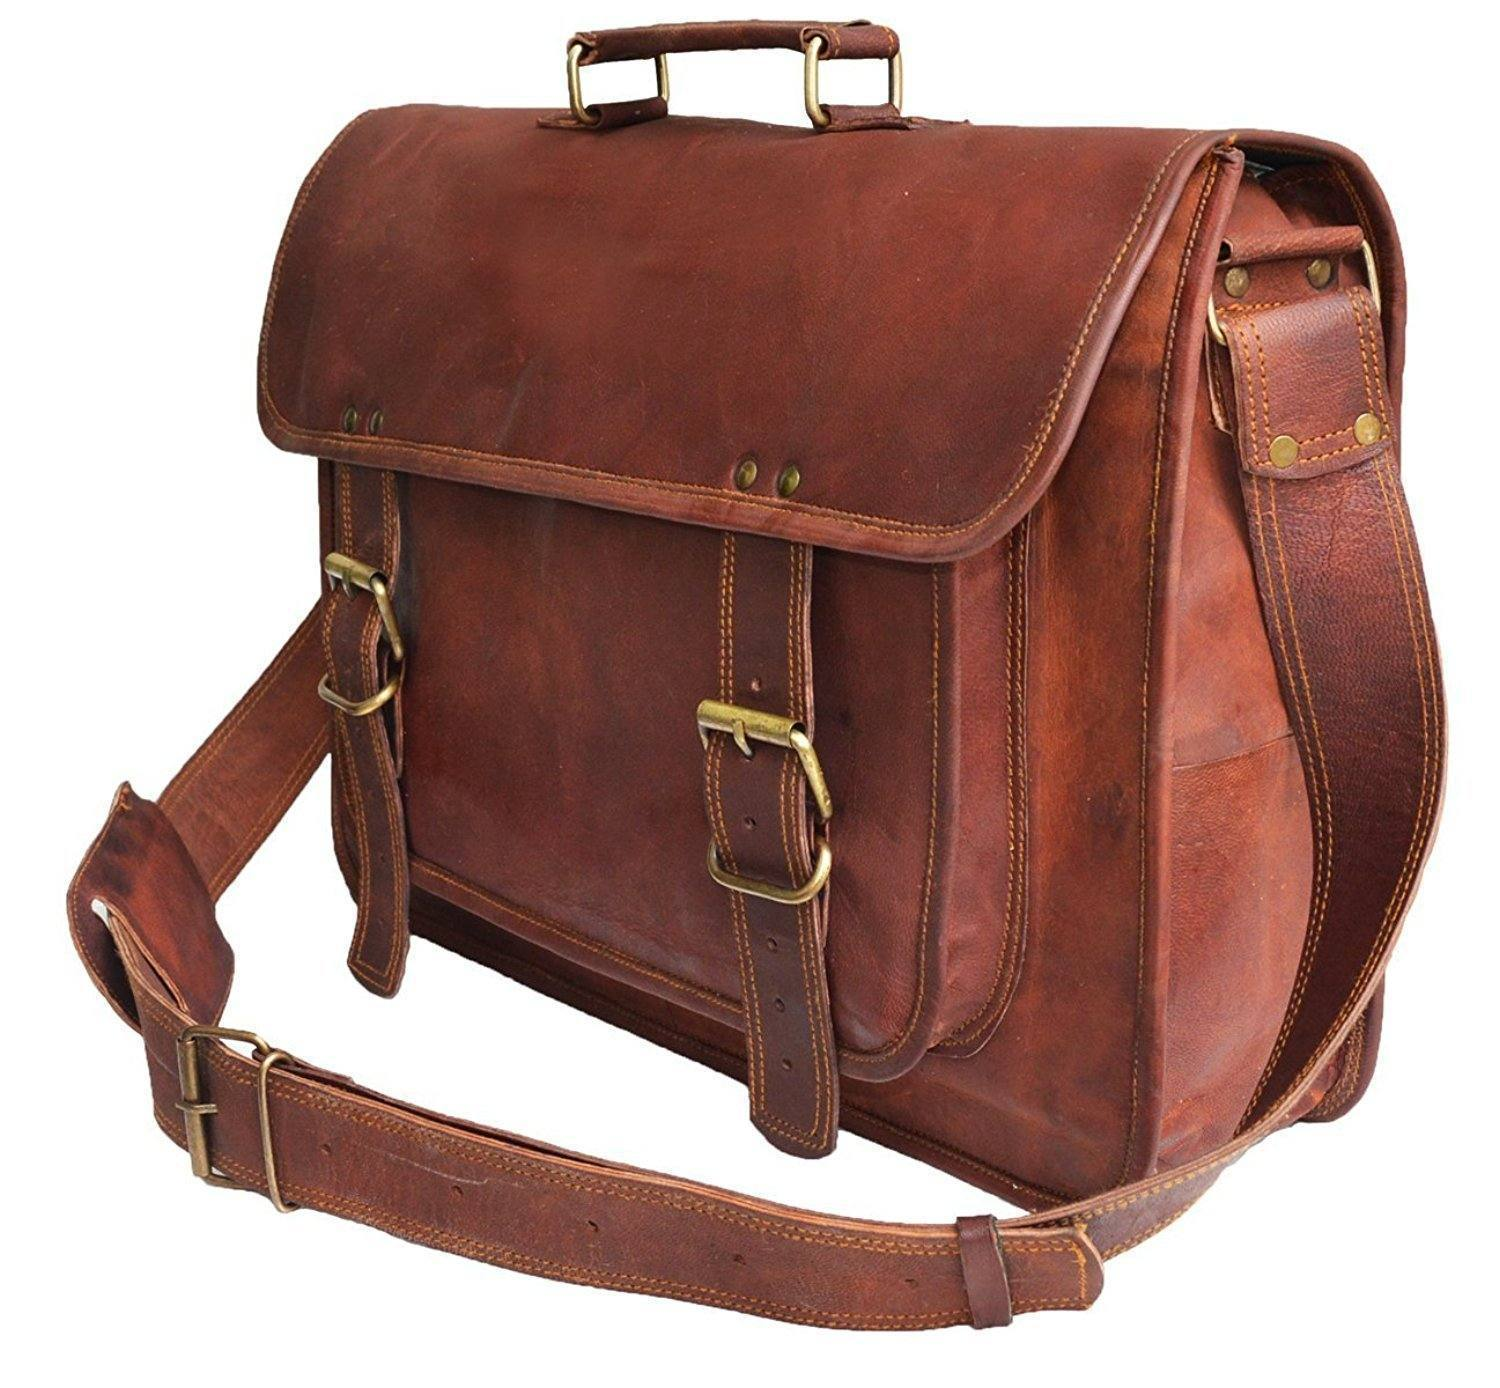 Leather - IN INDIA Rustic Big Pocket Pure Leather Office Satchel Bag - Fits Laptop Upto 15.6Inches